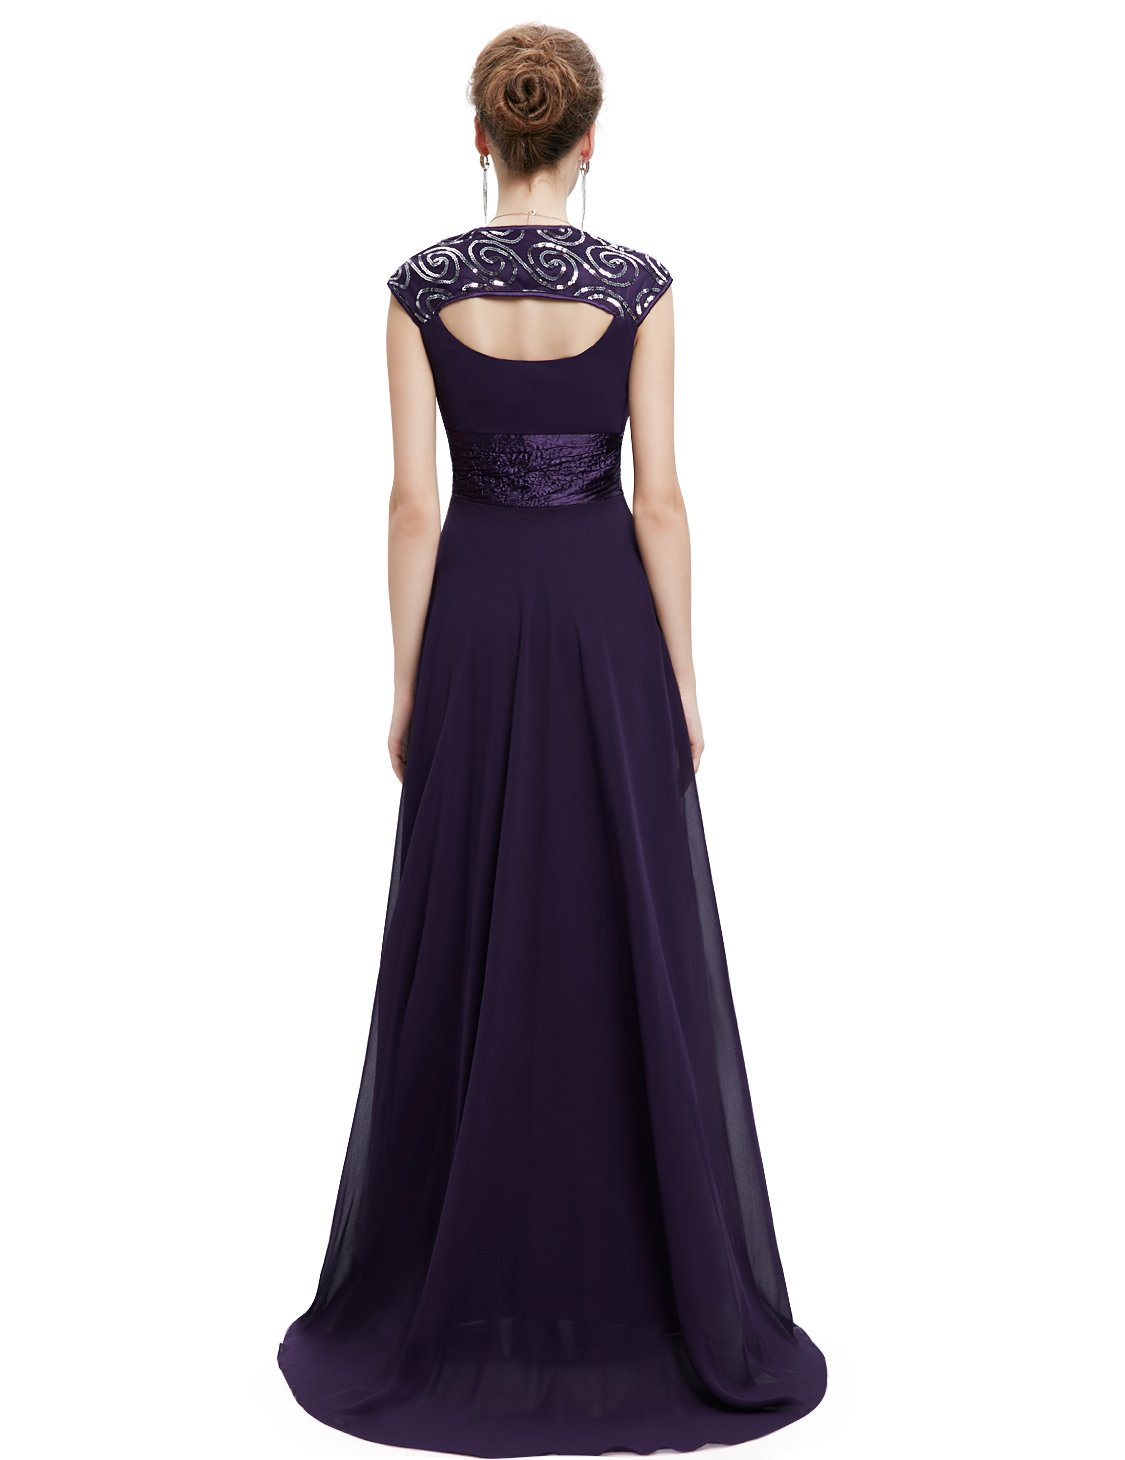 Ever-Pretty Womens Sleeveless V Neck Open Back Long Evening Gown 14 US Purple by Ever-Pretty (Image #3)